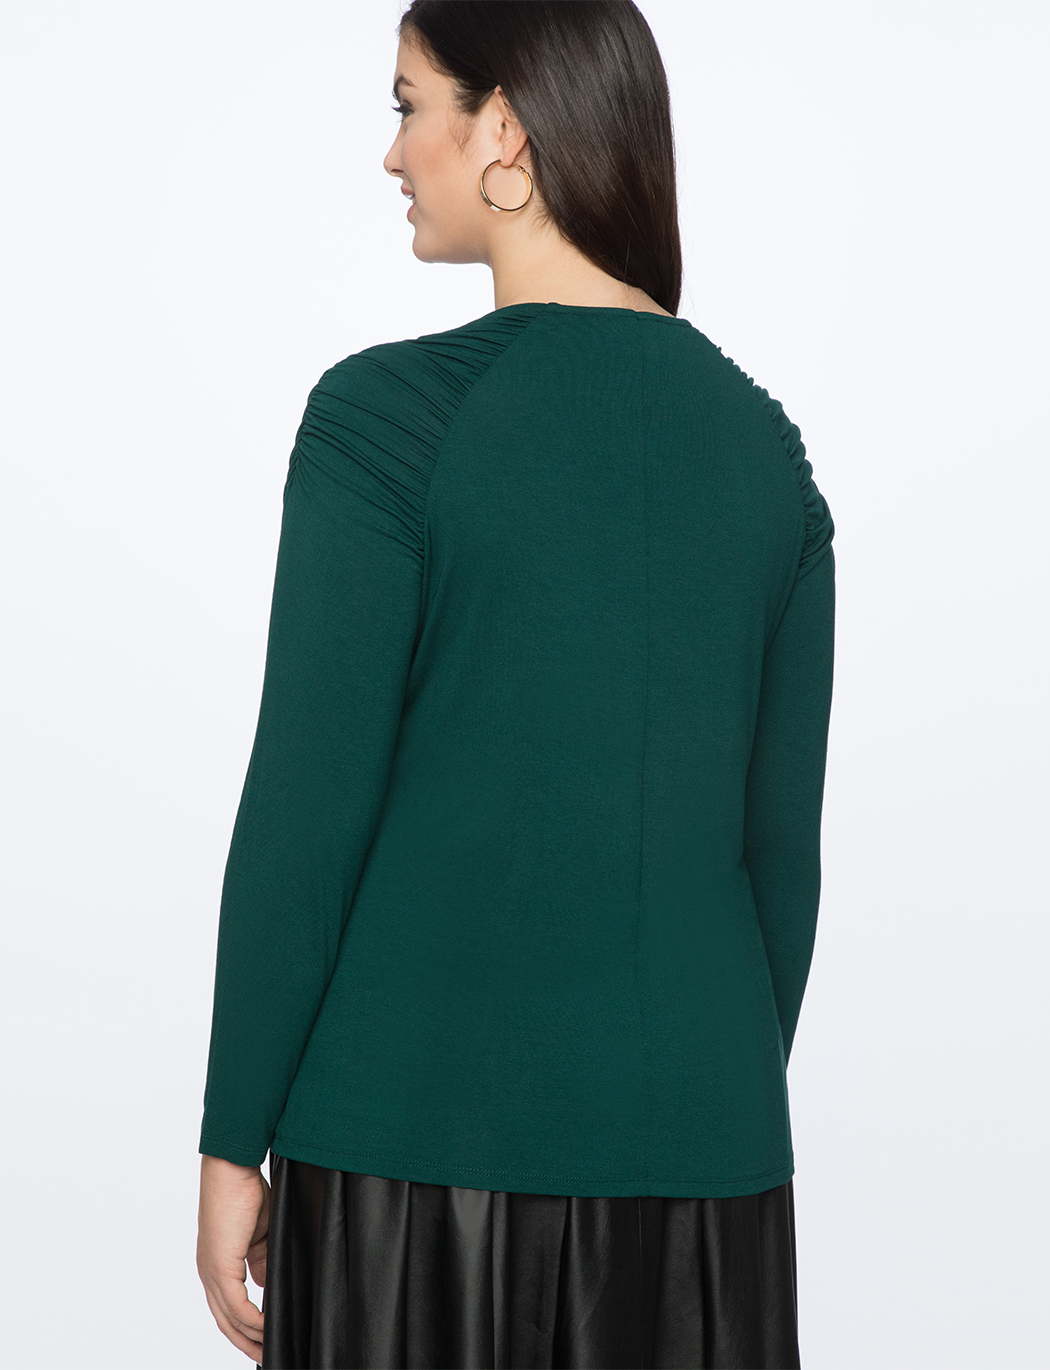 Gathered Shoulder Long Sleeve Tee